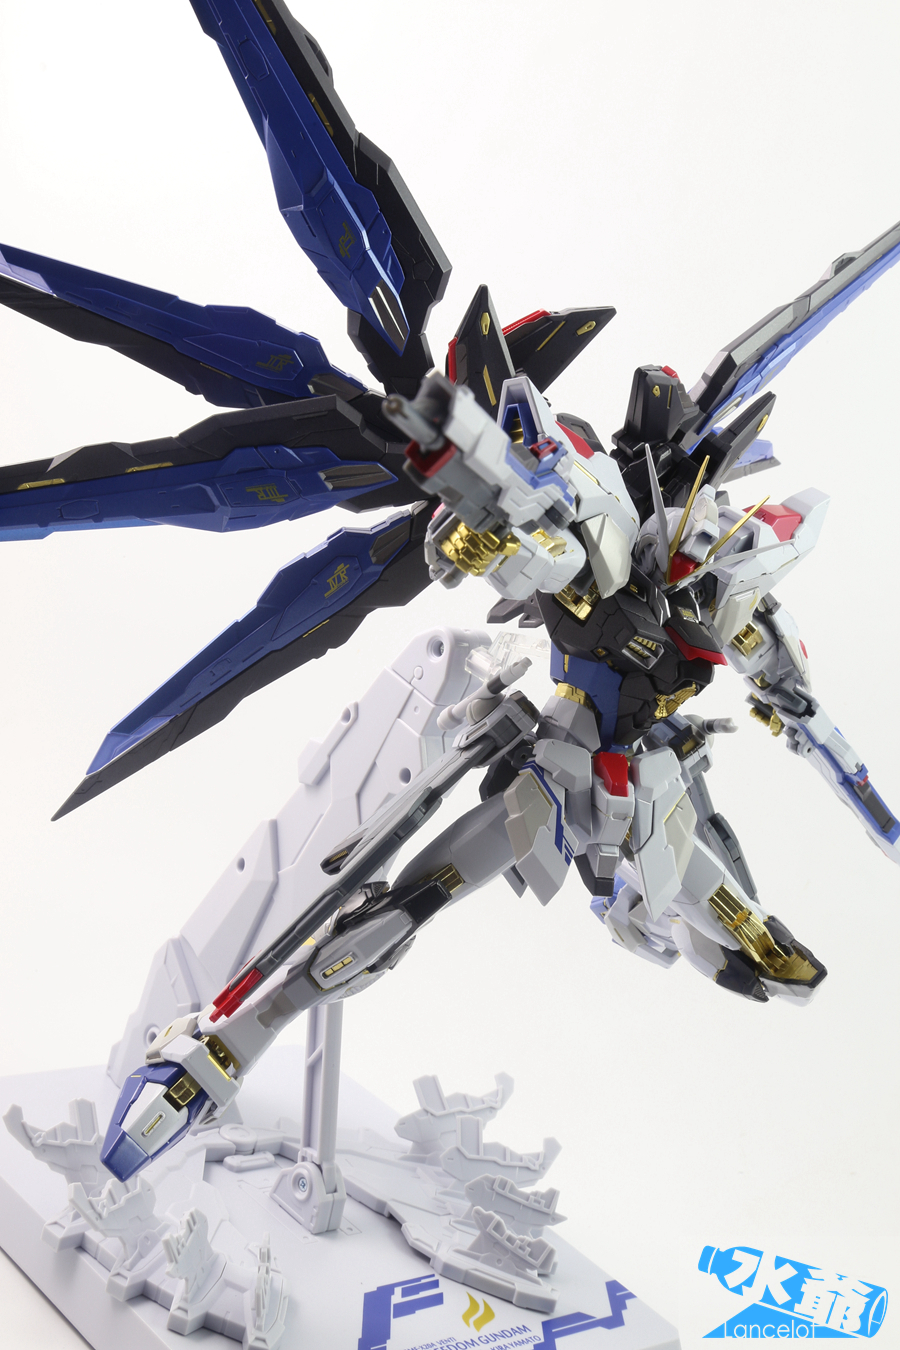 Metal Build Freedom Review